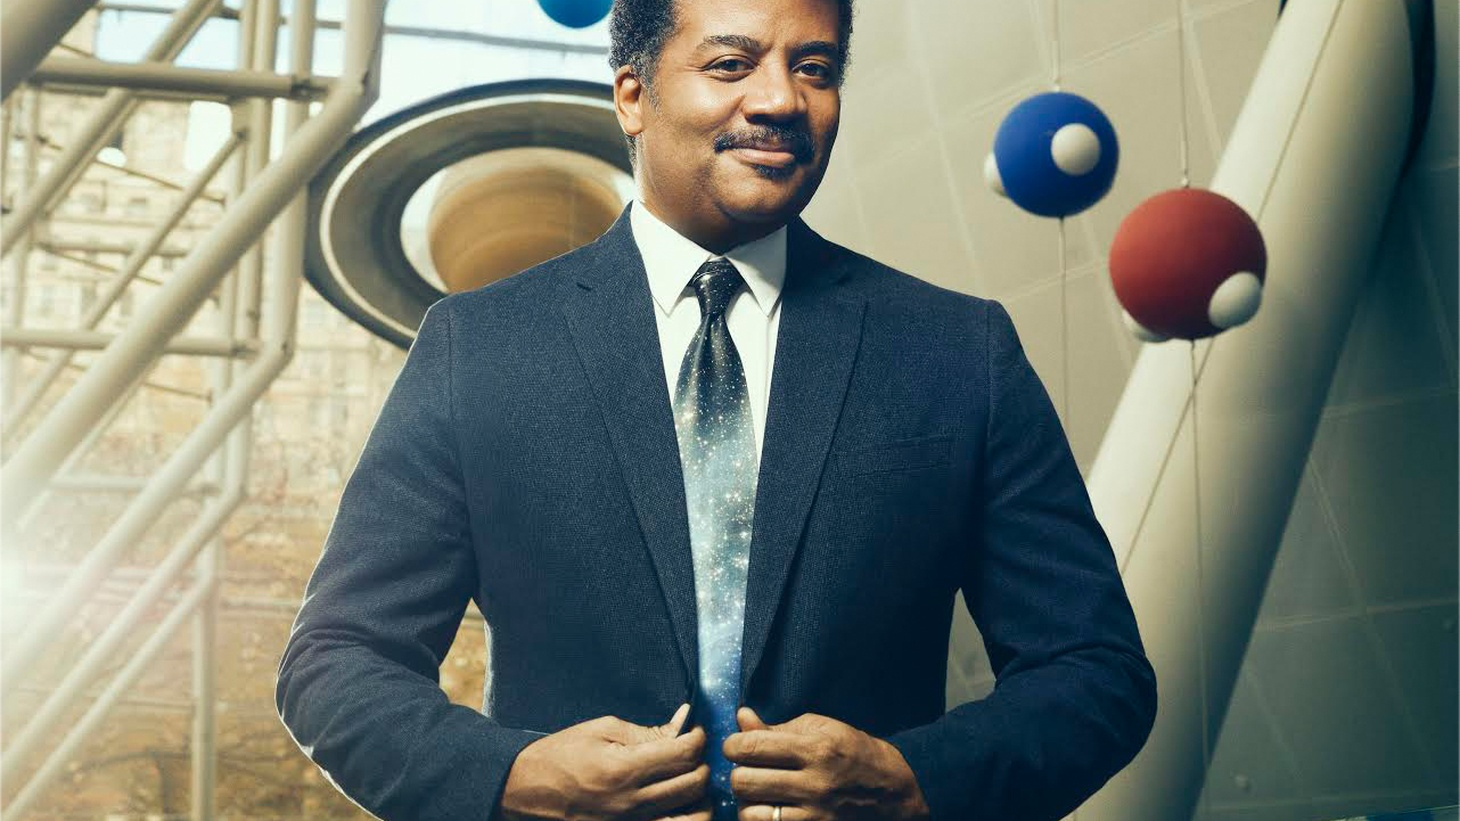 """The universe is under no obligation to make sense to you,"" writes Neil DeGrasse Tyson is his new book titled ""Astrophysics for People in a Hurry."" He talks about the multiverse, time travel, and why he opposes the idea of putting some humans on Mars in case a catastrophe wipes out Earth."